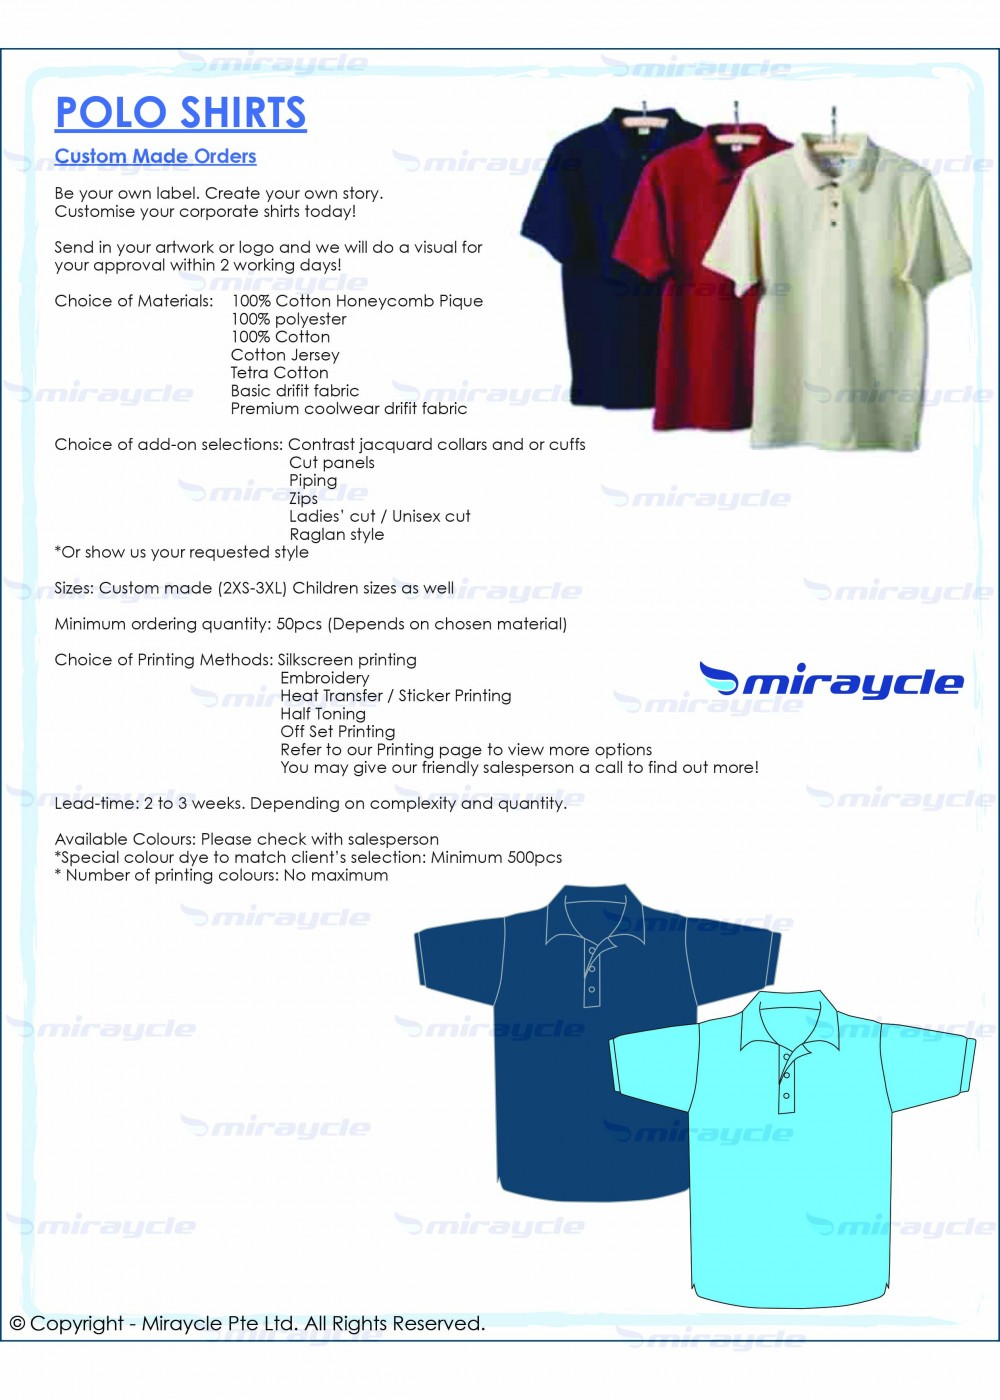 Polo Shirts Brochure